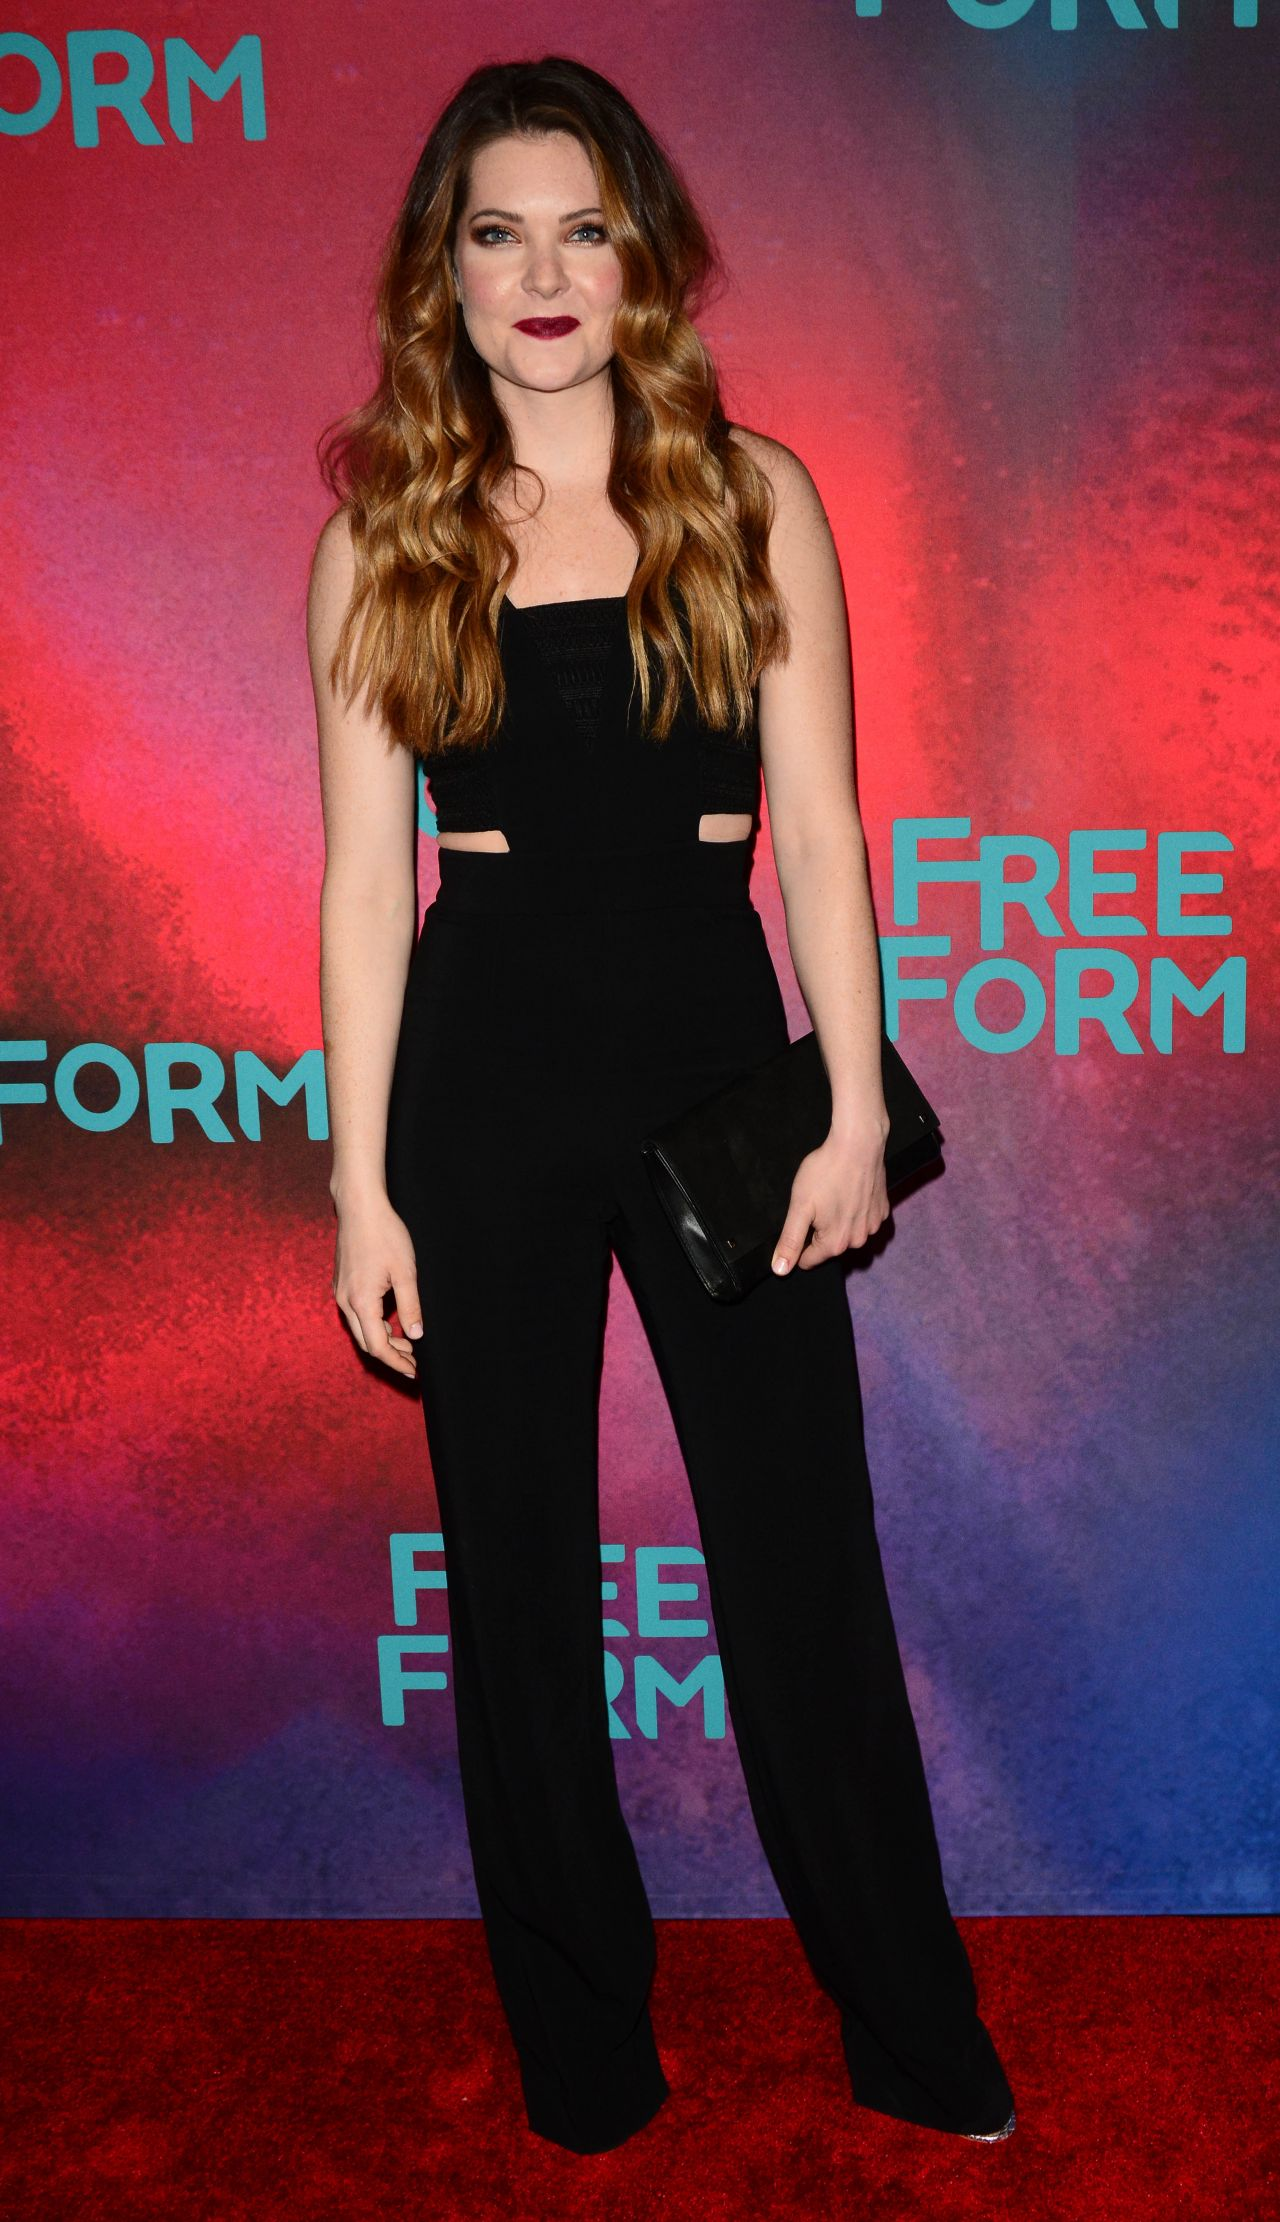 Meghann Fahy at Freeform Upfront in New York 4/19/2017